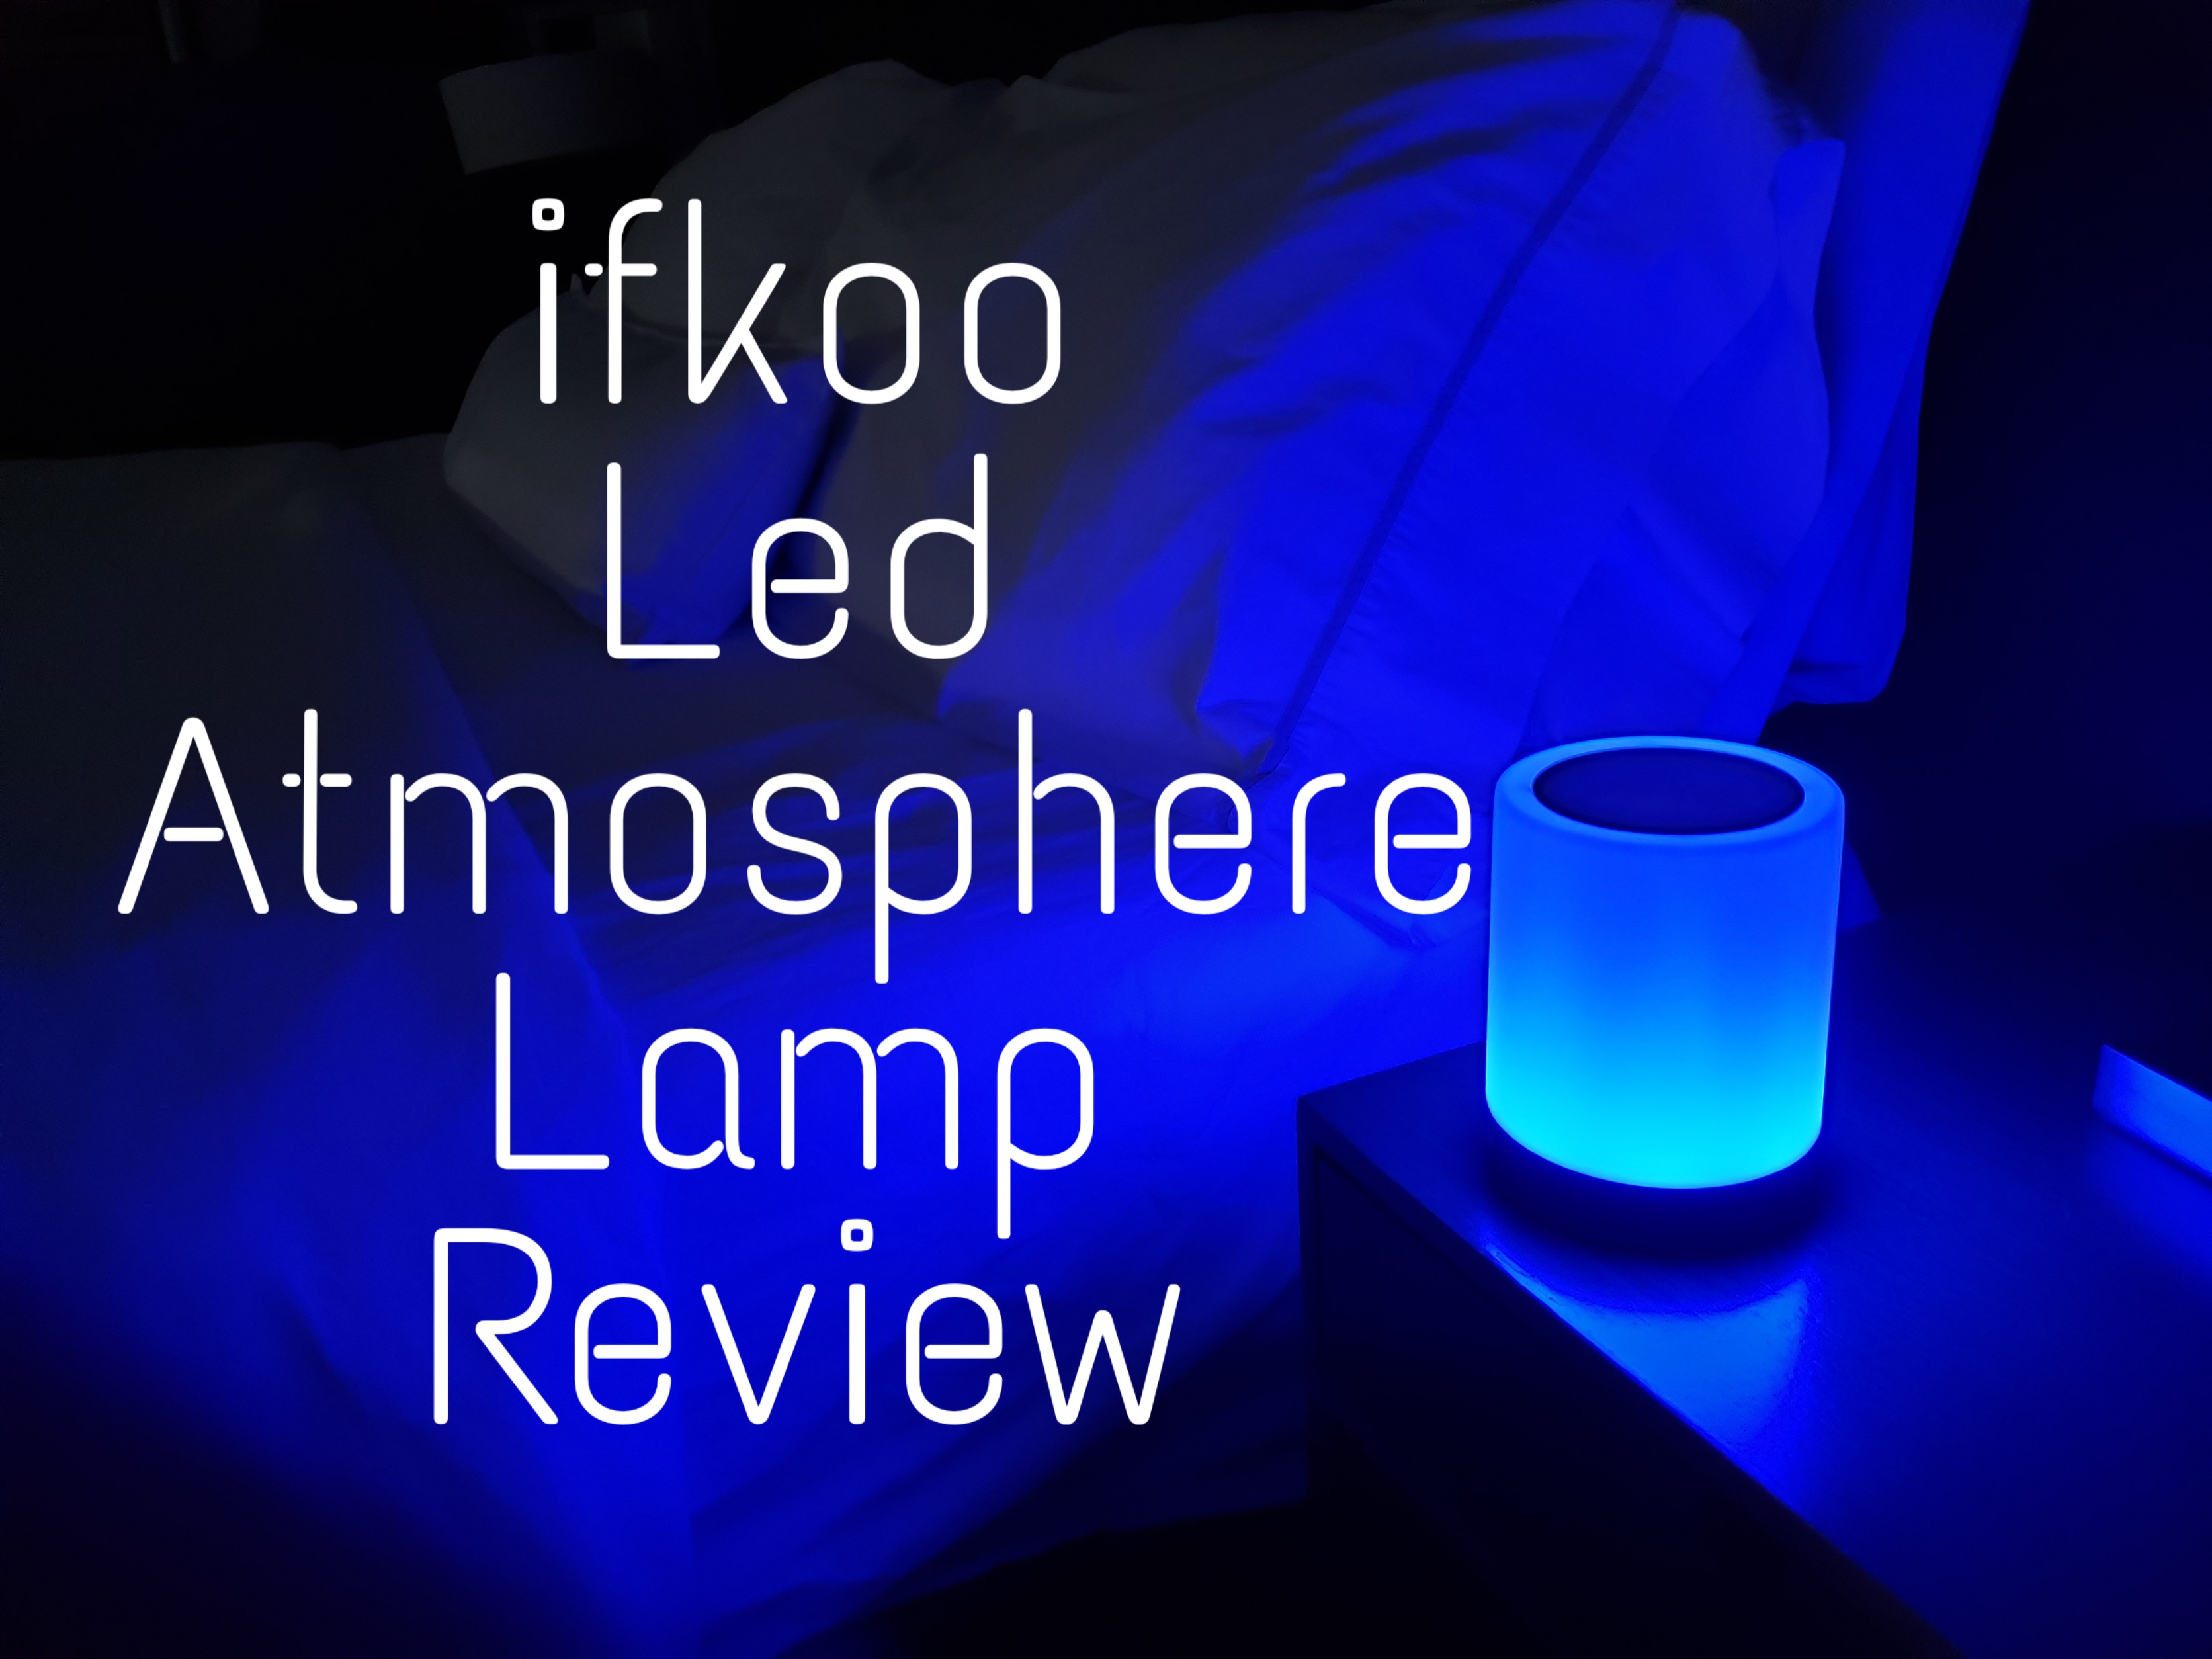 Touch Sensor Bedside Lamp for Bedroom iFkoo Rechargeable Night Light with Hook